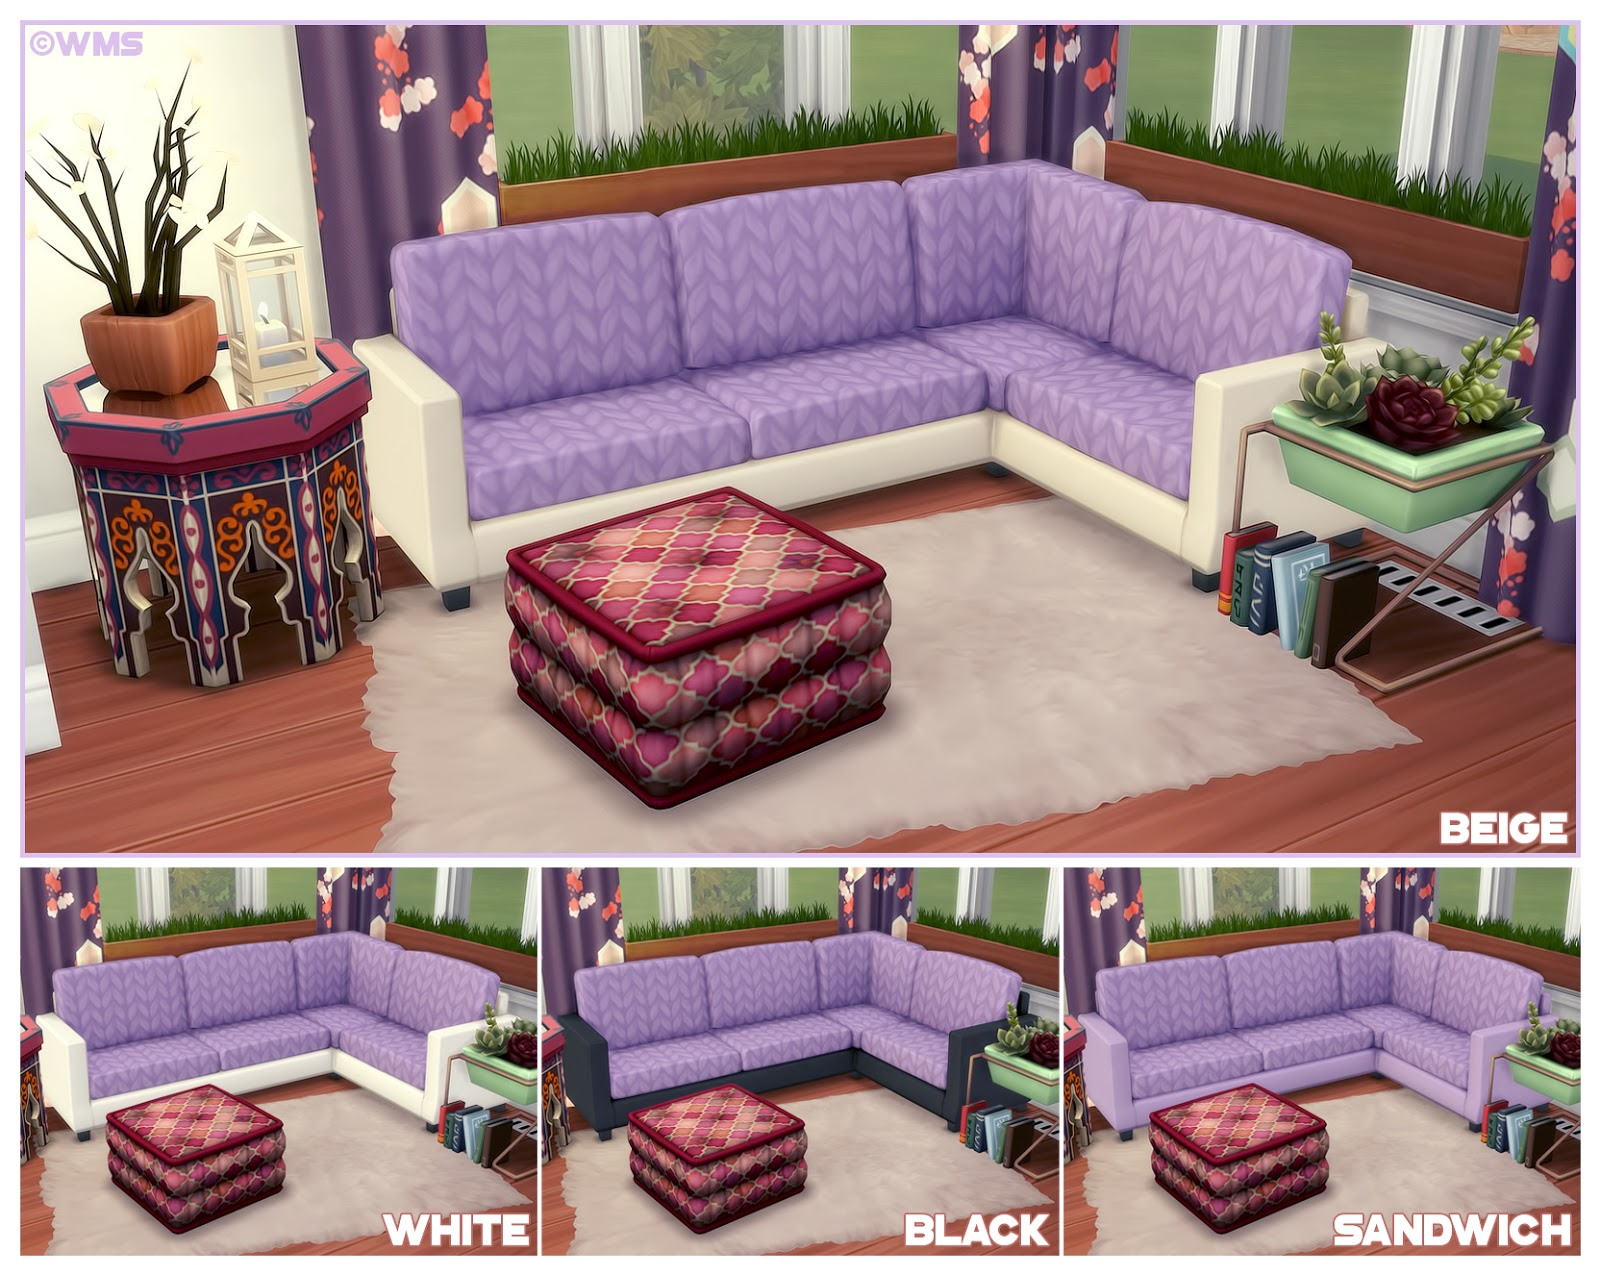 Sims 4 Dylan Sofa Beds Sim Man123 S Easton Wrap Around Sofa Recolours